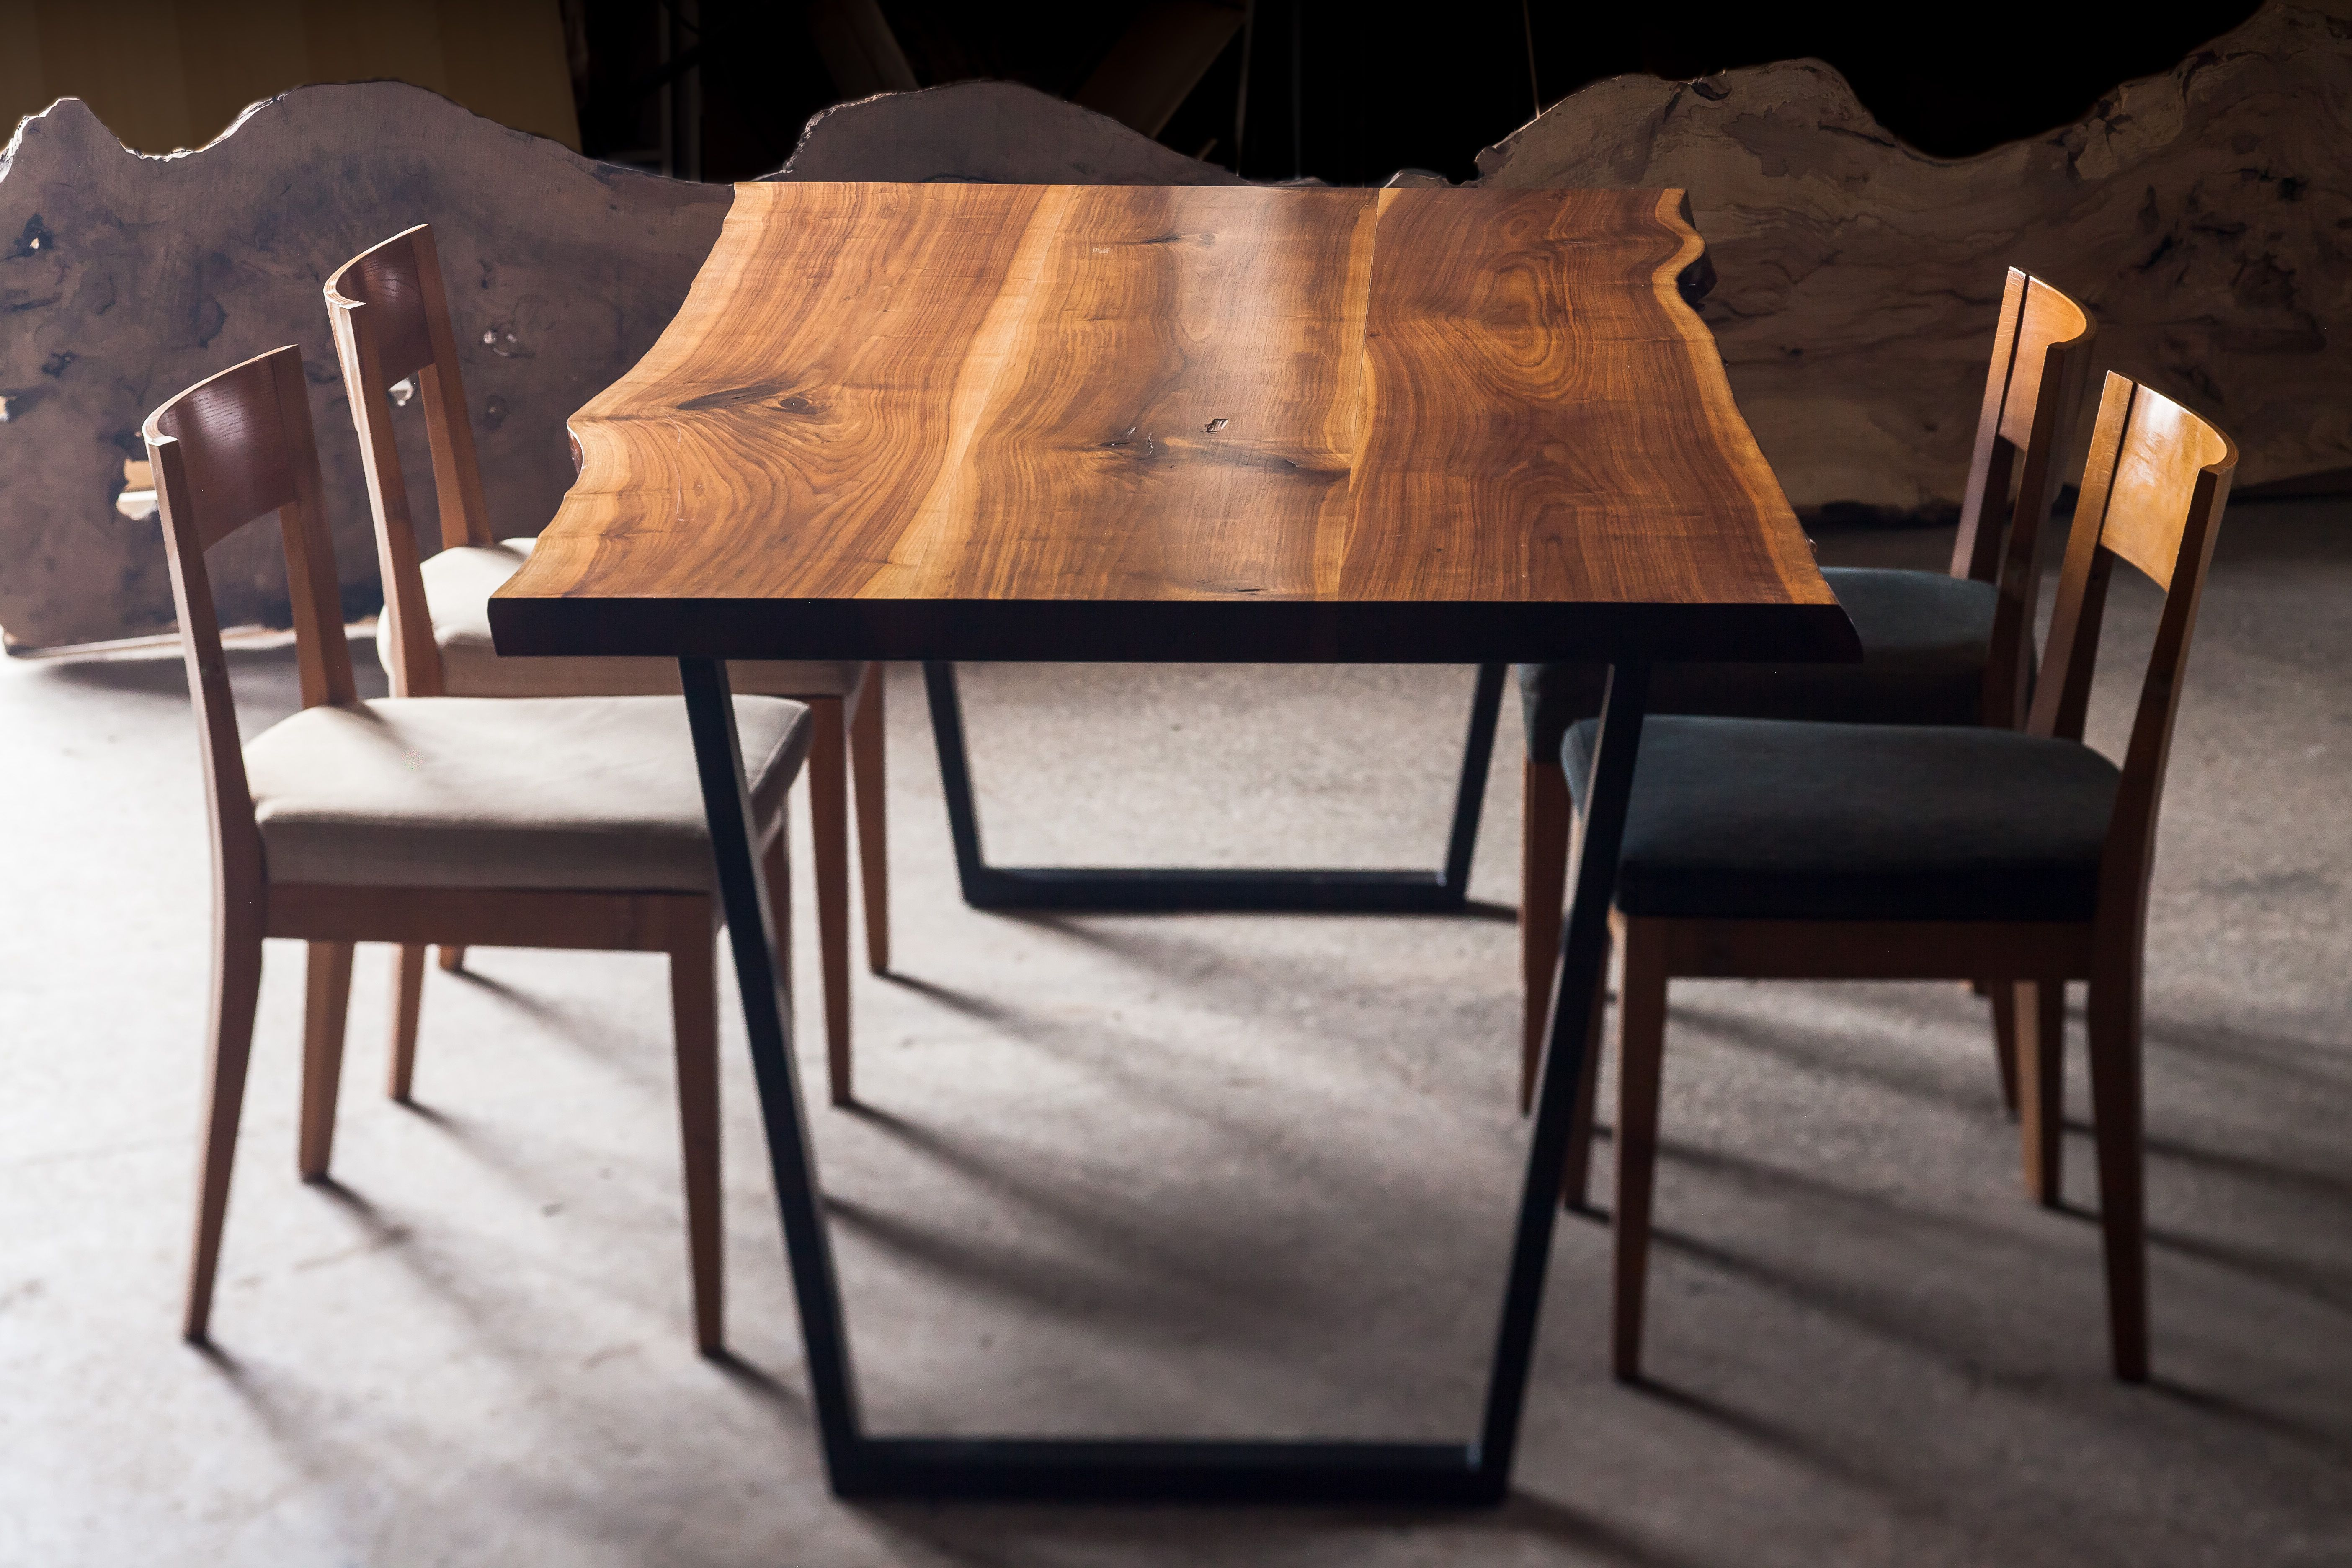 Dining Table Made From Walnut Tree Available For At Www Mamut Tr